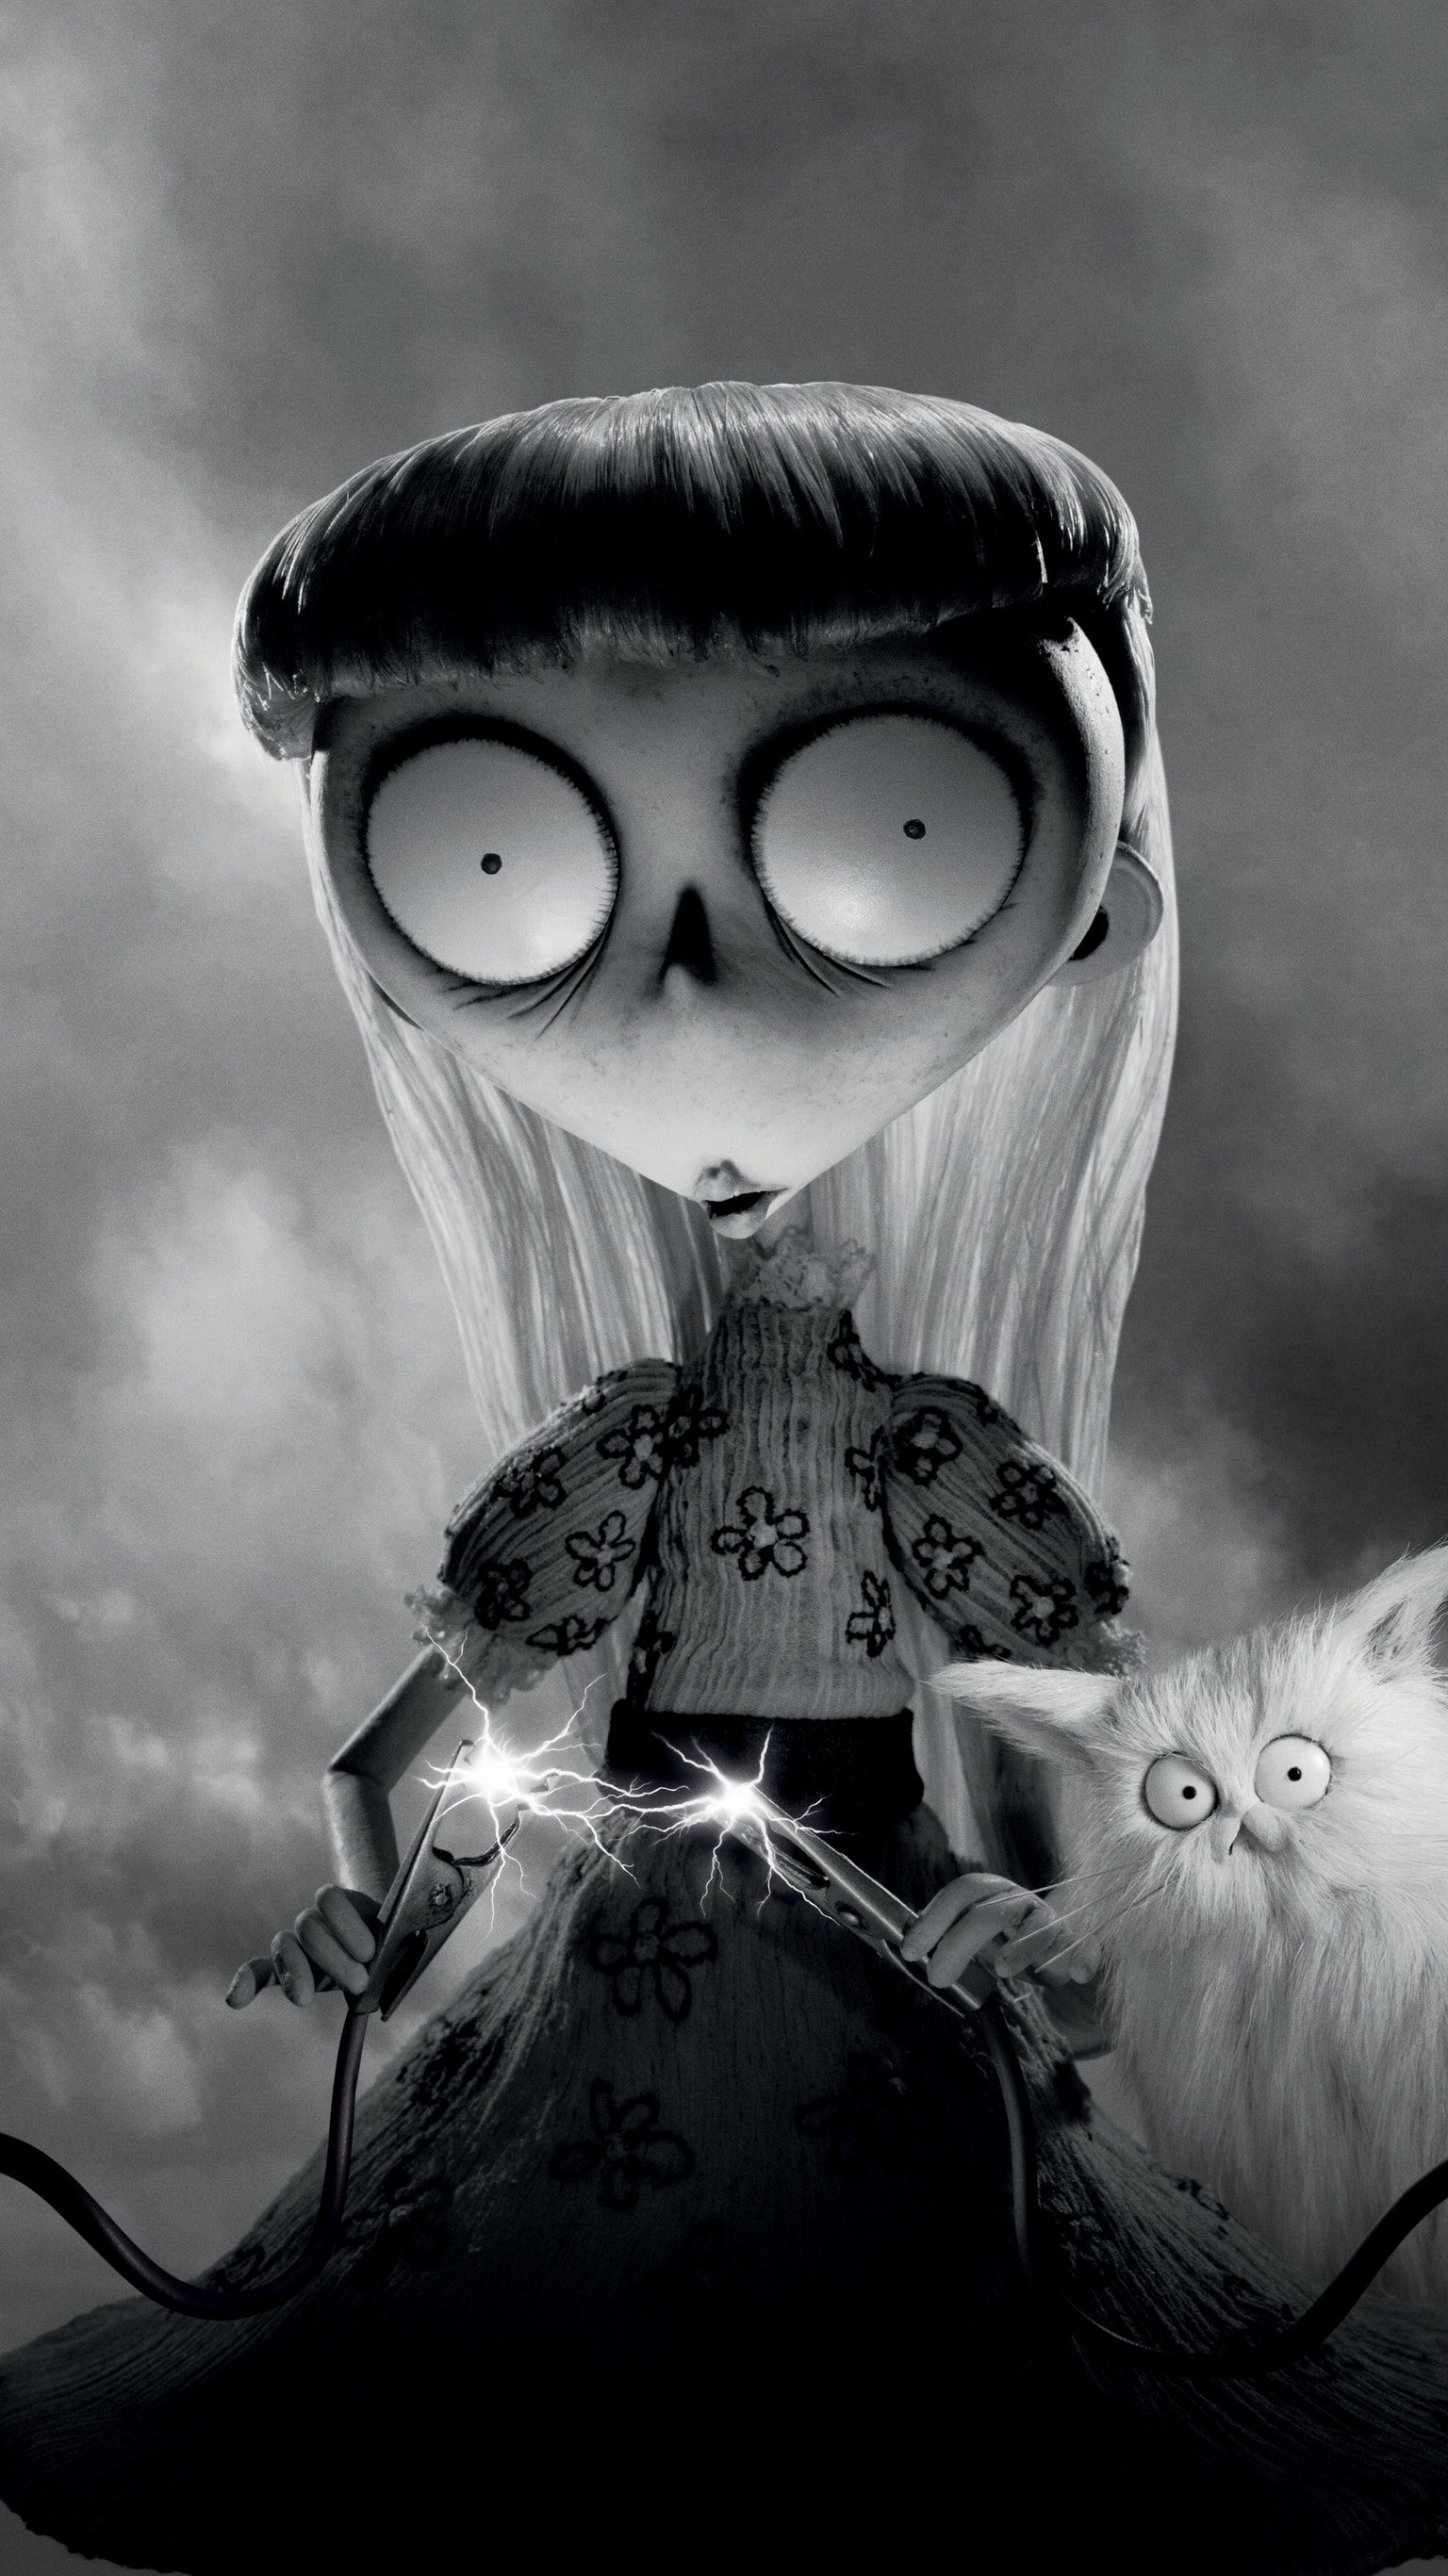 Frankenweenie 2012 Phone Wallpaper Moviemania Tim Burton Animation Tim Burton Films Tim Burton Characters